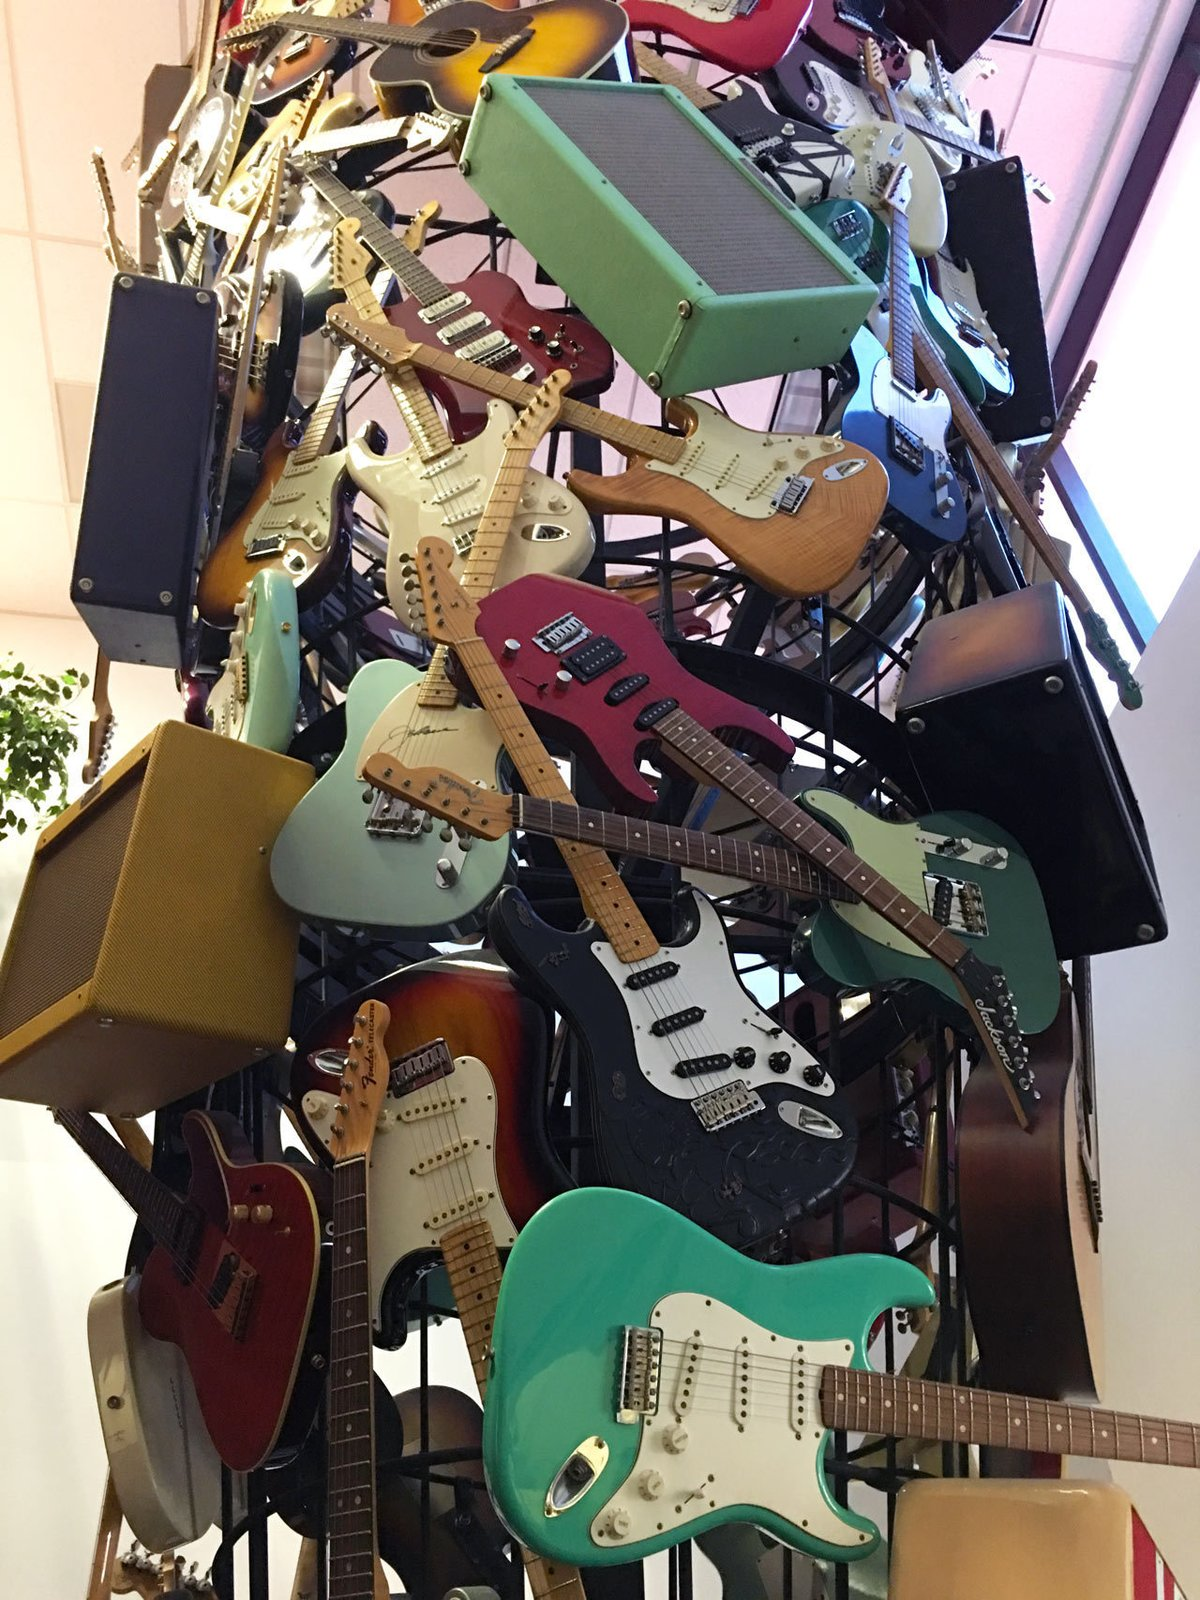 Photo 9 of 19 in Fender's Mod Shop Lets You Build Your Own Modern Classic